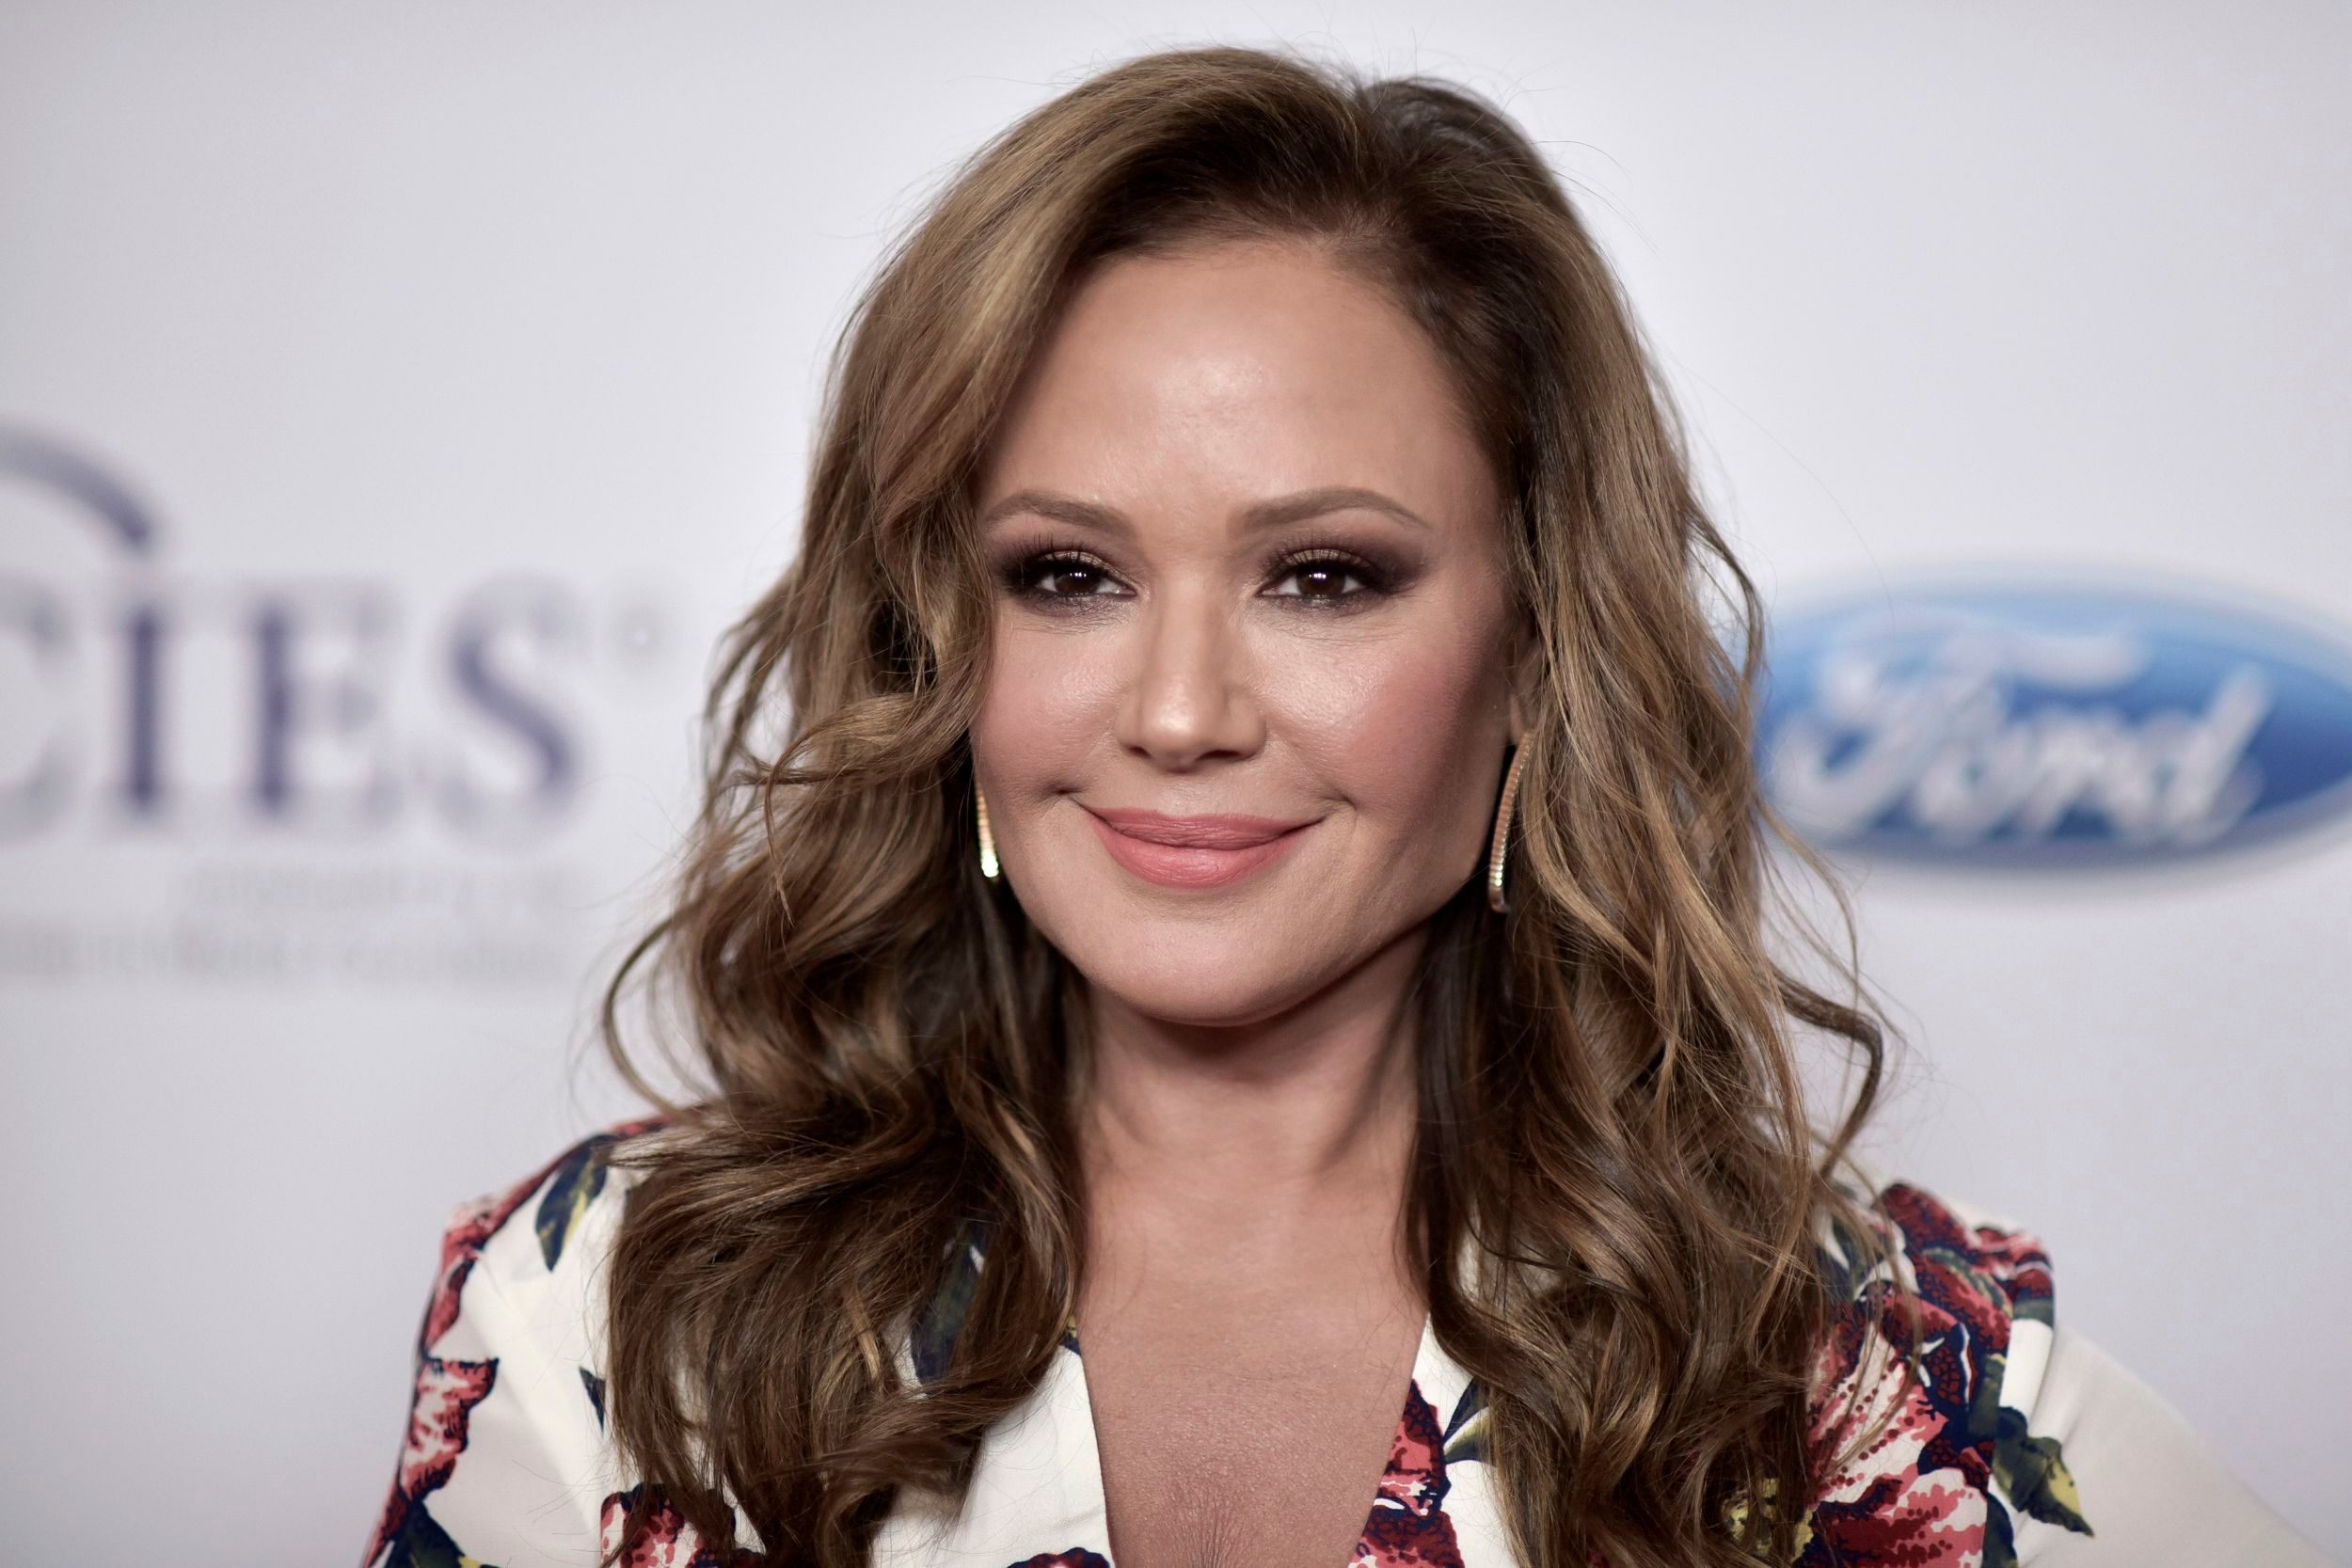 Leah Remini Persists, and Her Fearlessness Reaps Emmy Acclaim